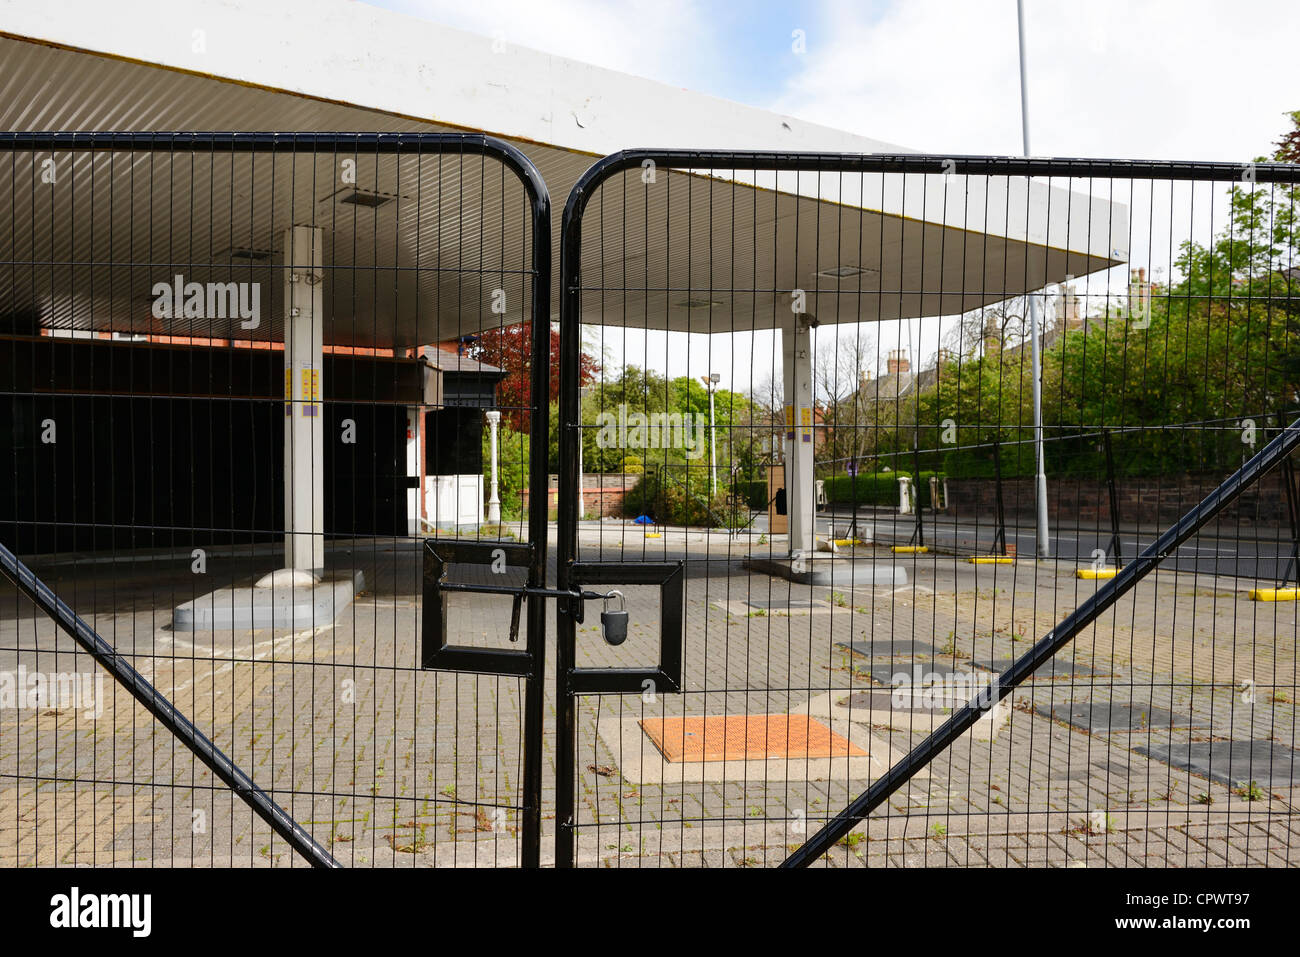 Disused and closed petrol station UK - Stock Image